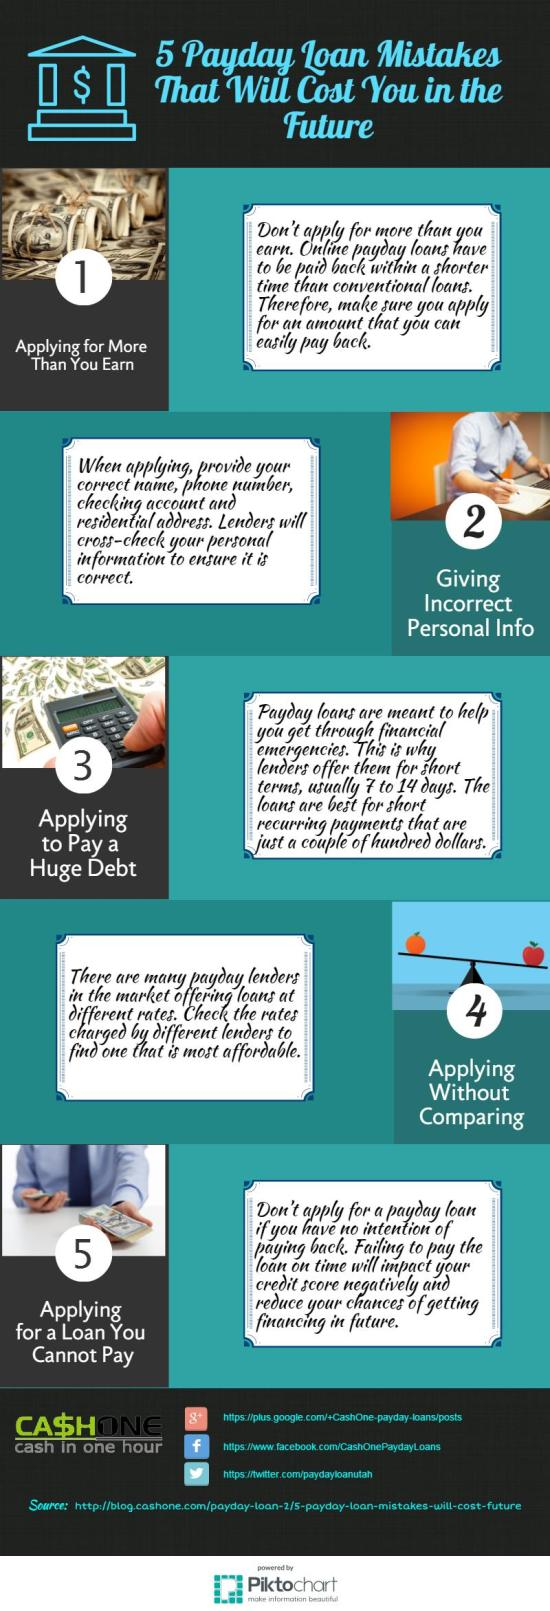 5 Payday Loan Mistakes